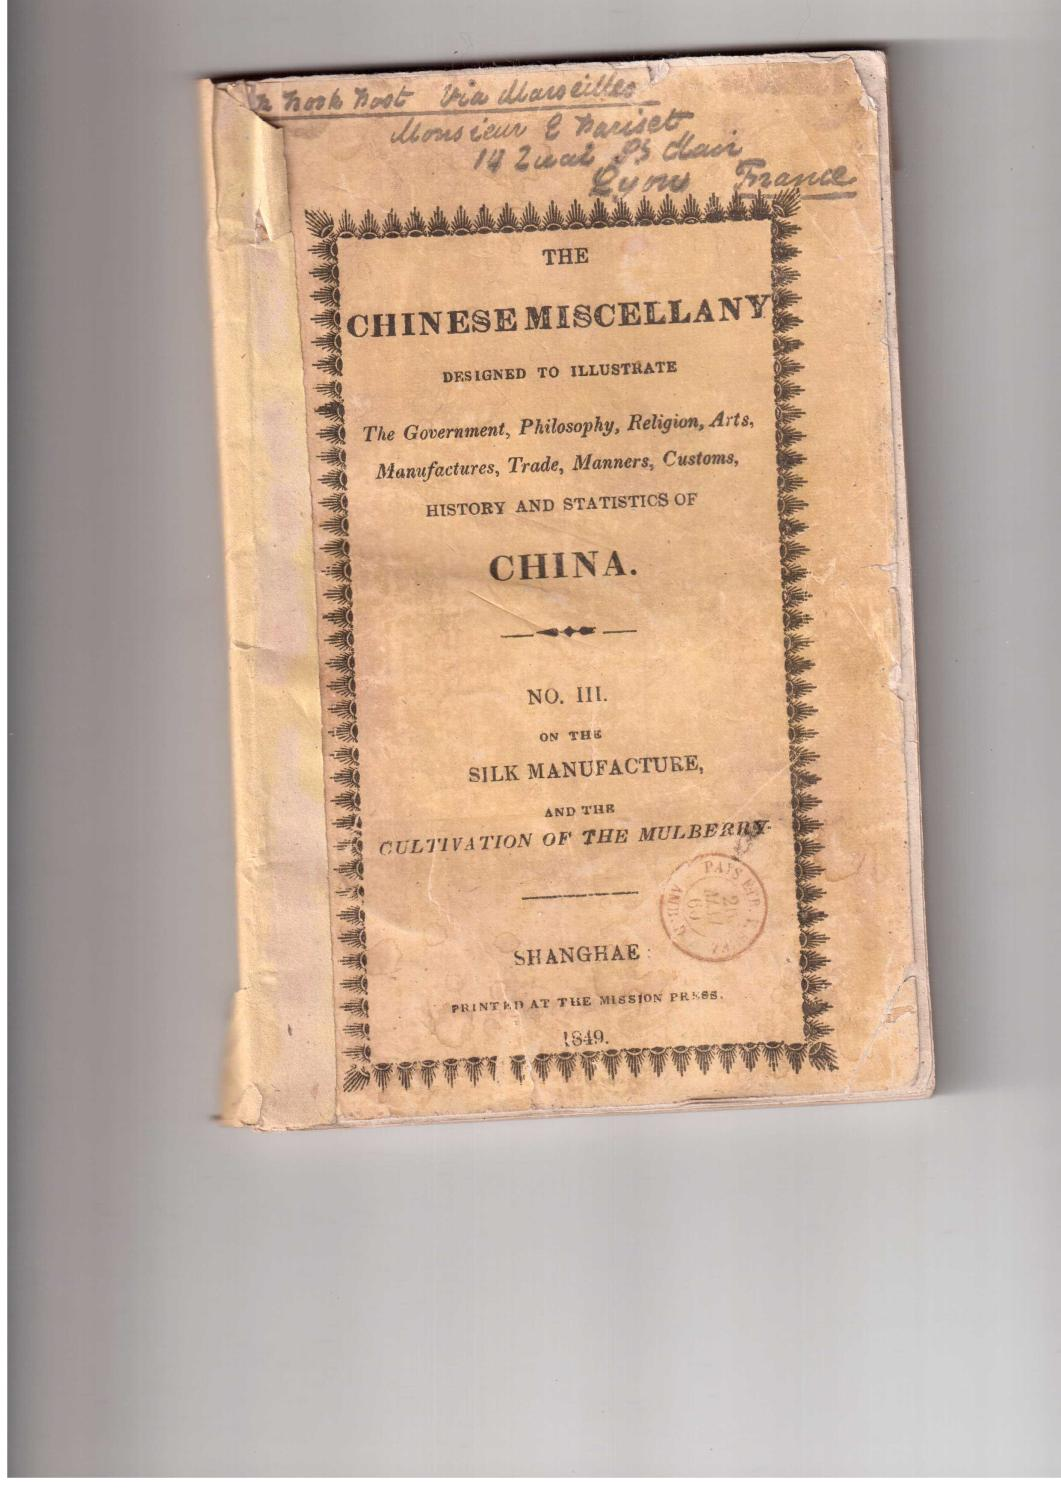 THE_CHINESE_MISCELLANY_designed_to_illustrate_The_Government_Philosophy_Religion_Arts_Manufactures_Trade_Manners_Customs_History_and_Statisti